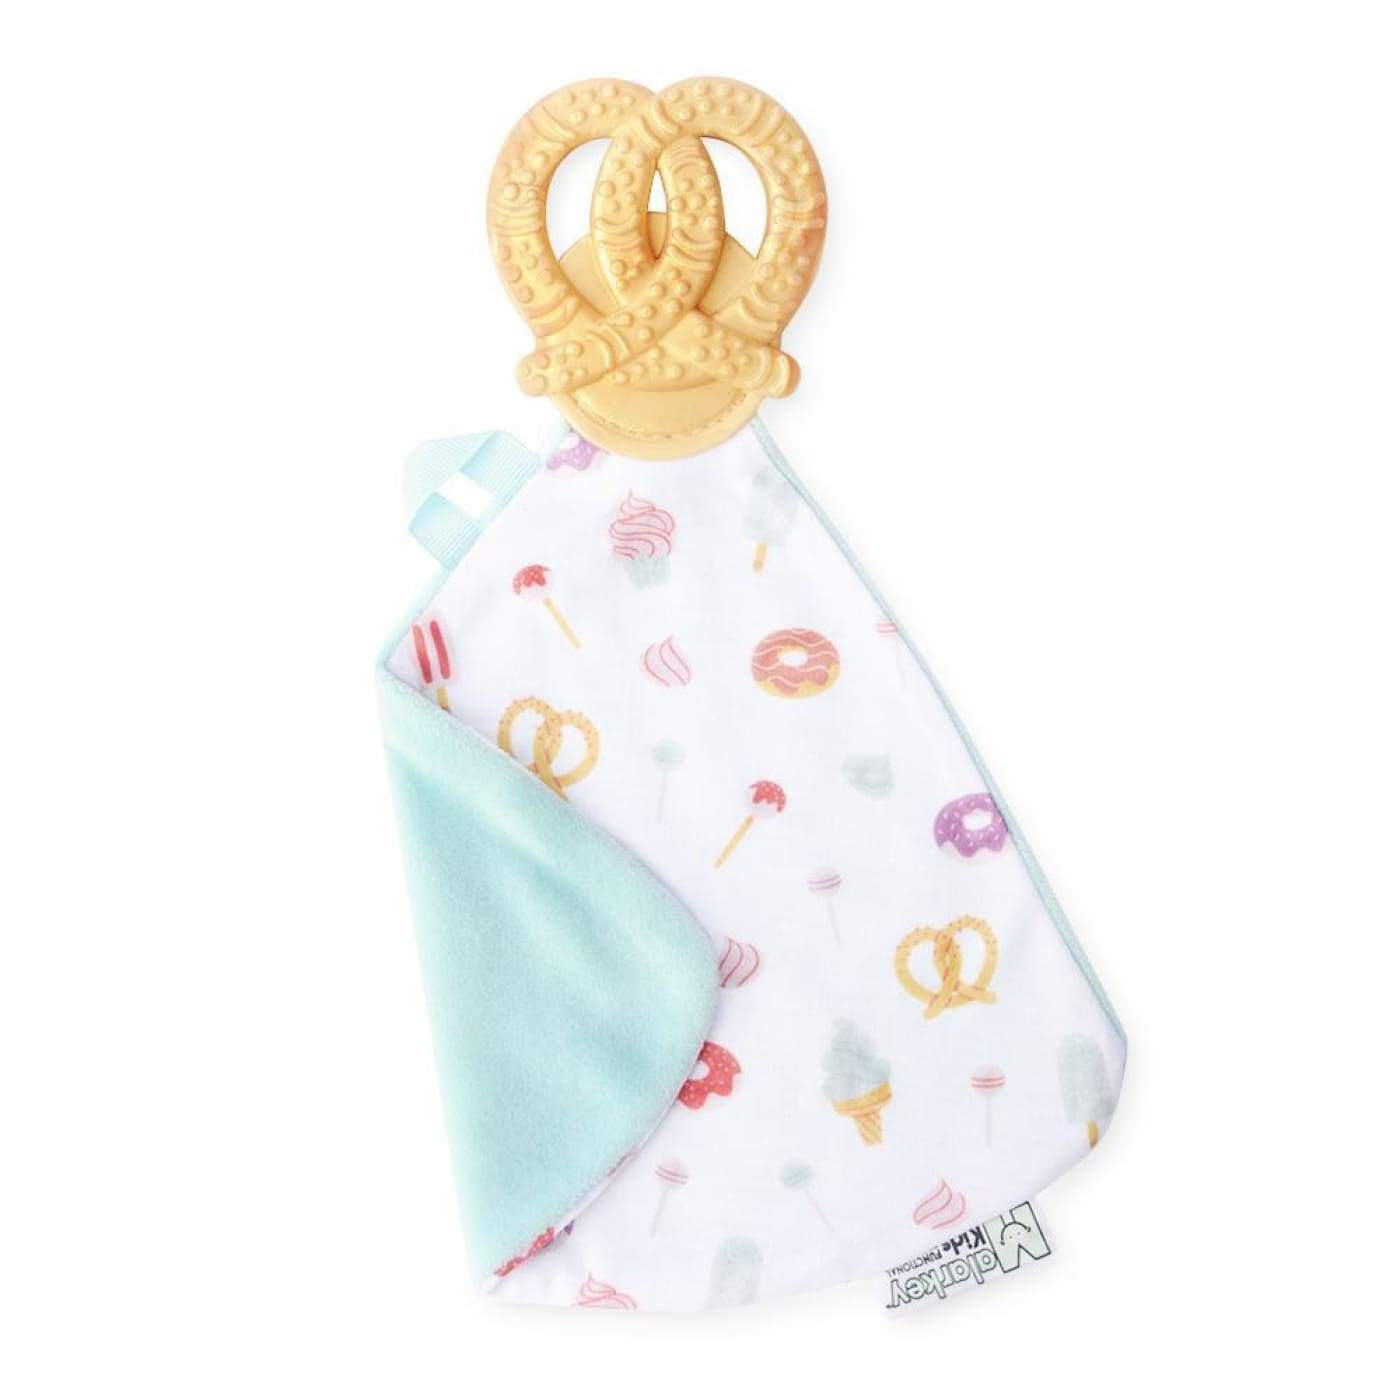 Malarkey Kids Munch-it Blanket - Sweet & Salty - TOYS & PLAY - BLANKIES/COMFORTERS/RATTLES